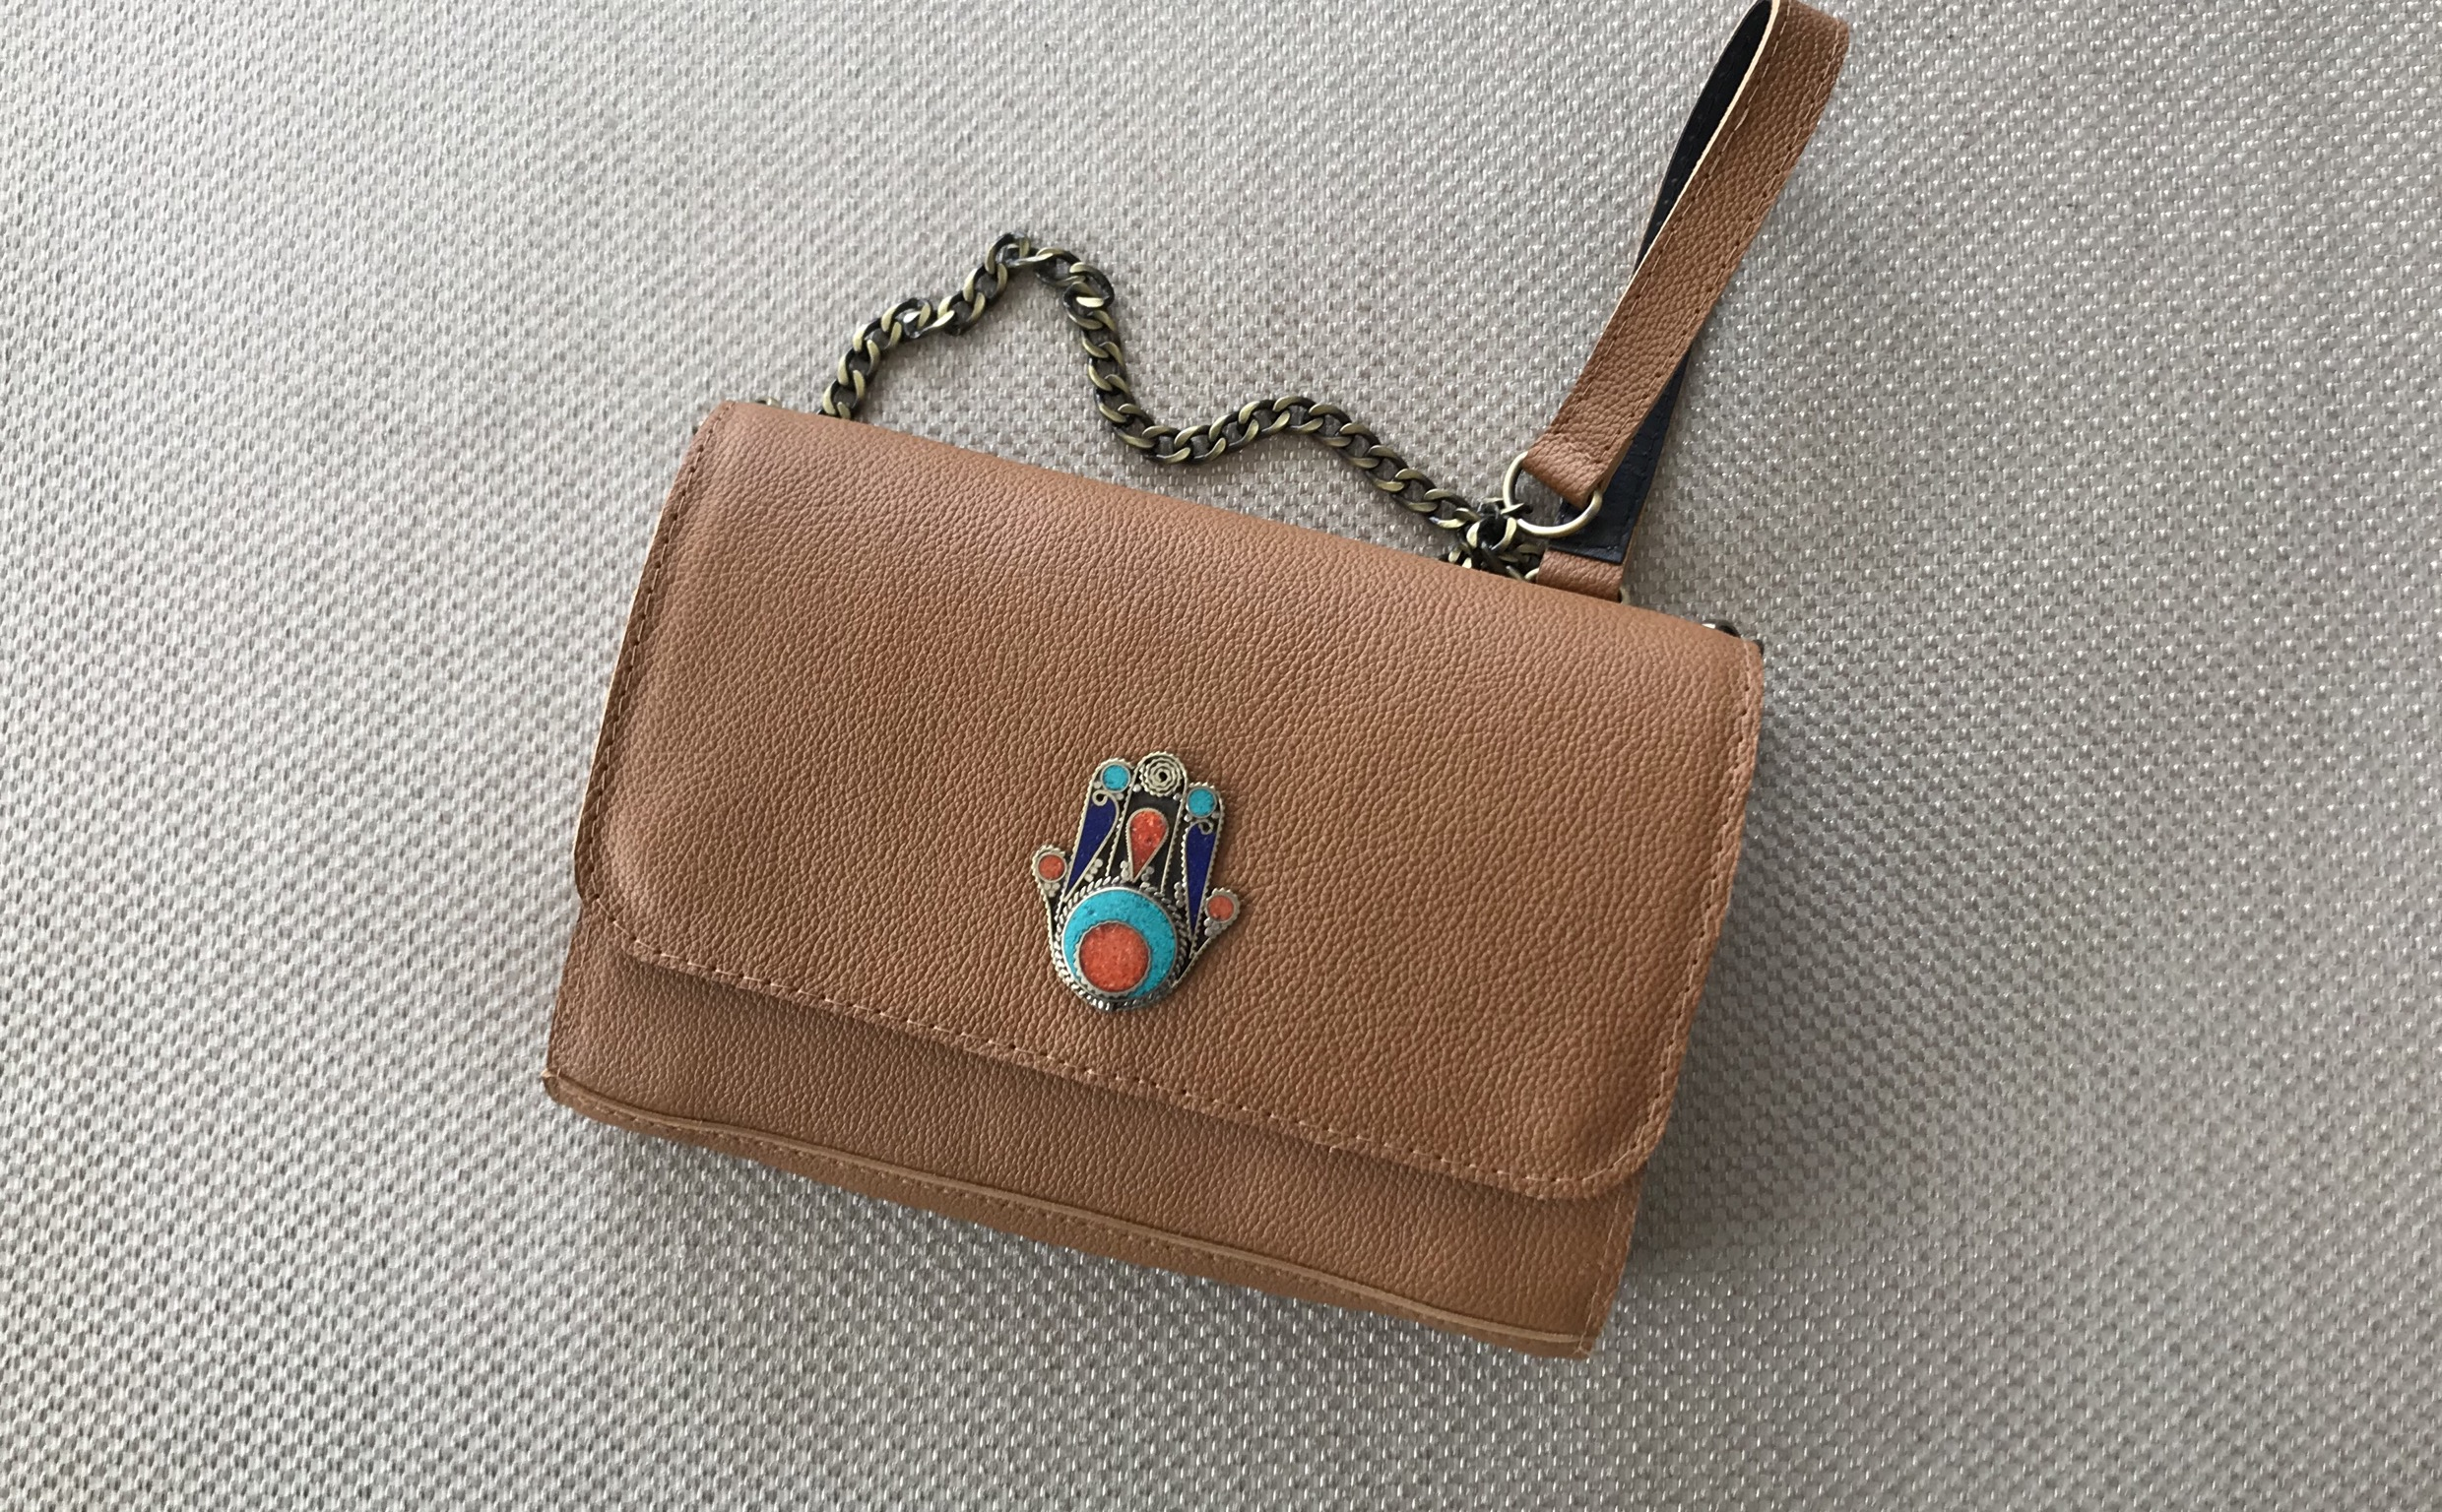 Jewelry bag leather camel